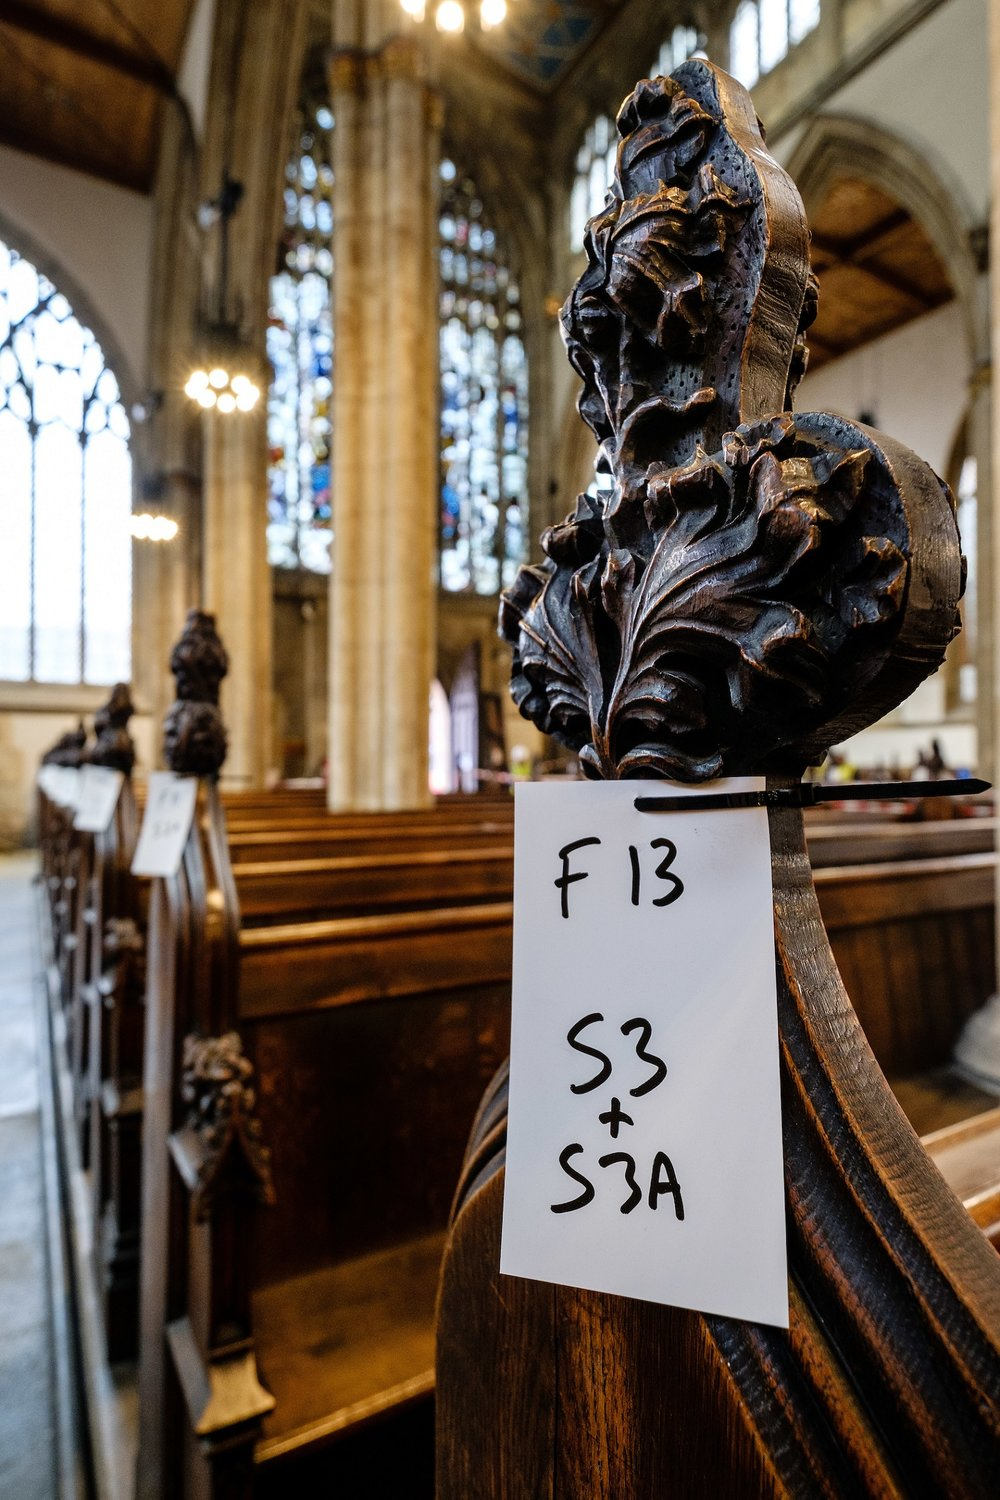 All the pews and decoratively carved pew ends are being carefully logged as part of the process of preserving Holy Trinity Church's Victorian heritage while creating a new, flexible open space in the nave.